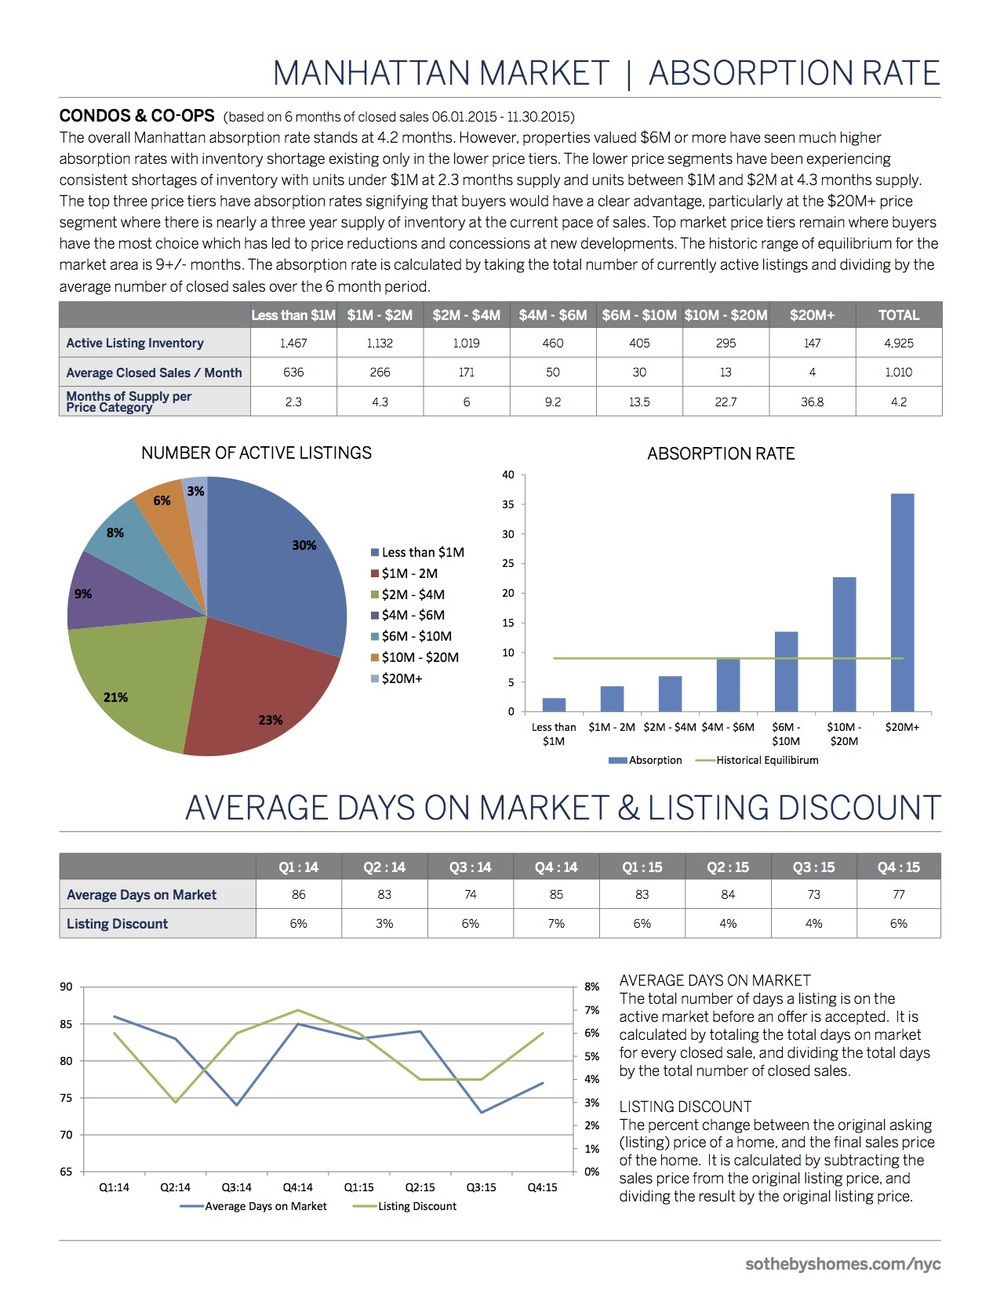 SothebysInternationalRealty_Manhattan_MarketReport_2015_Q4_3.jpg